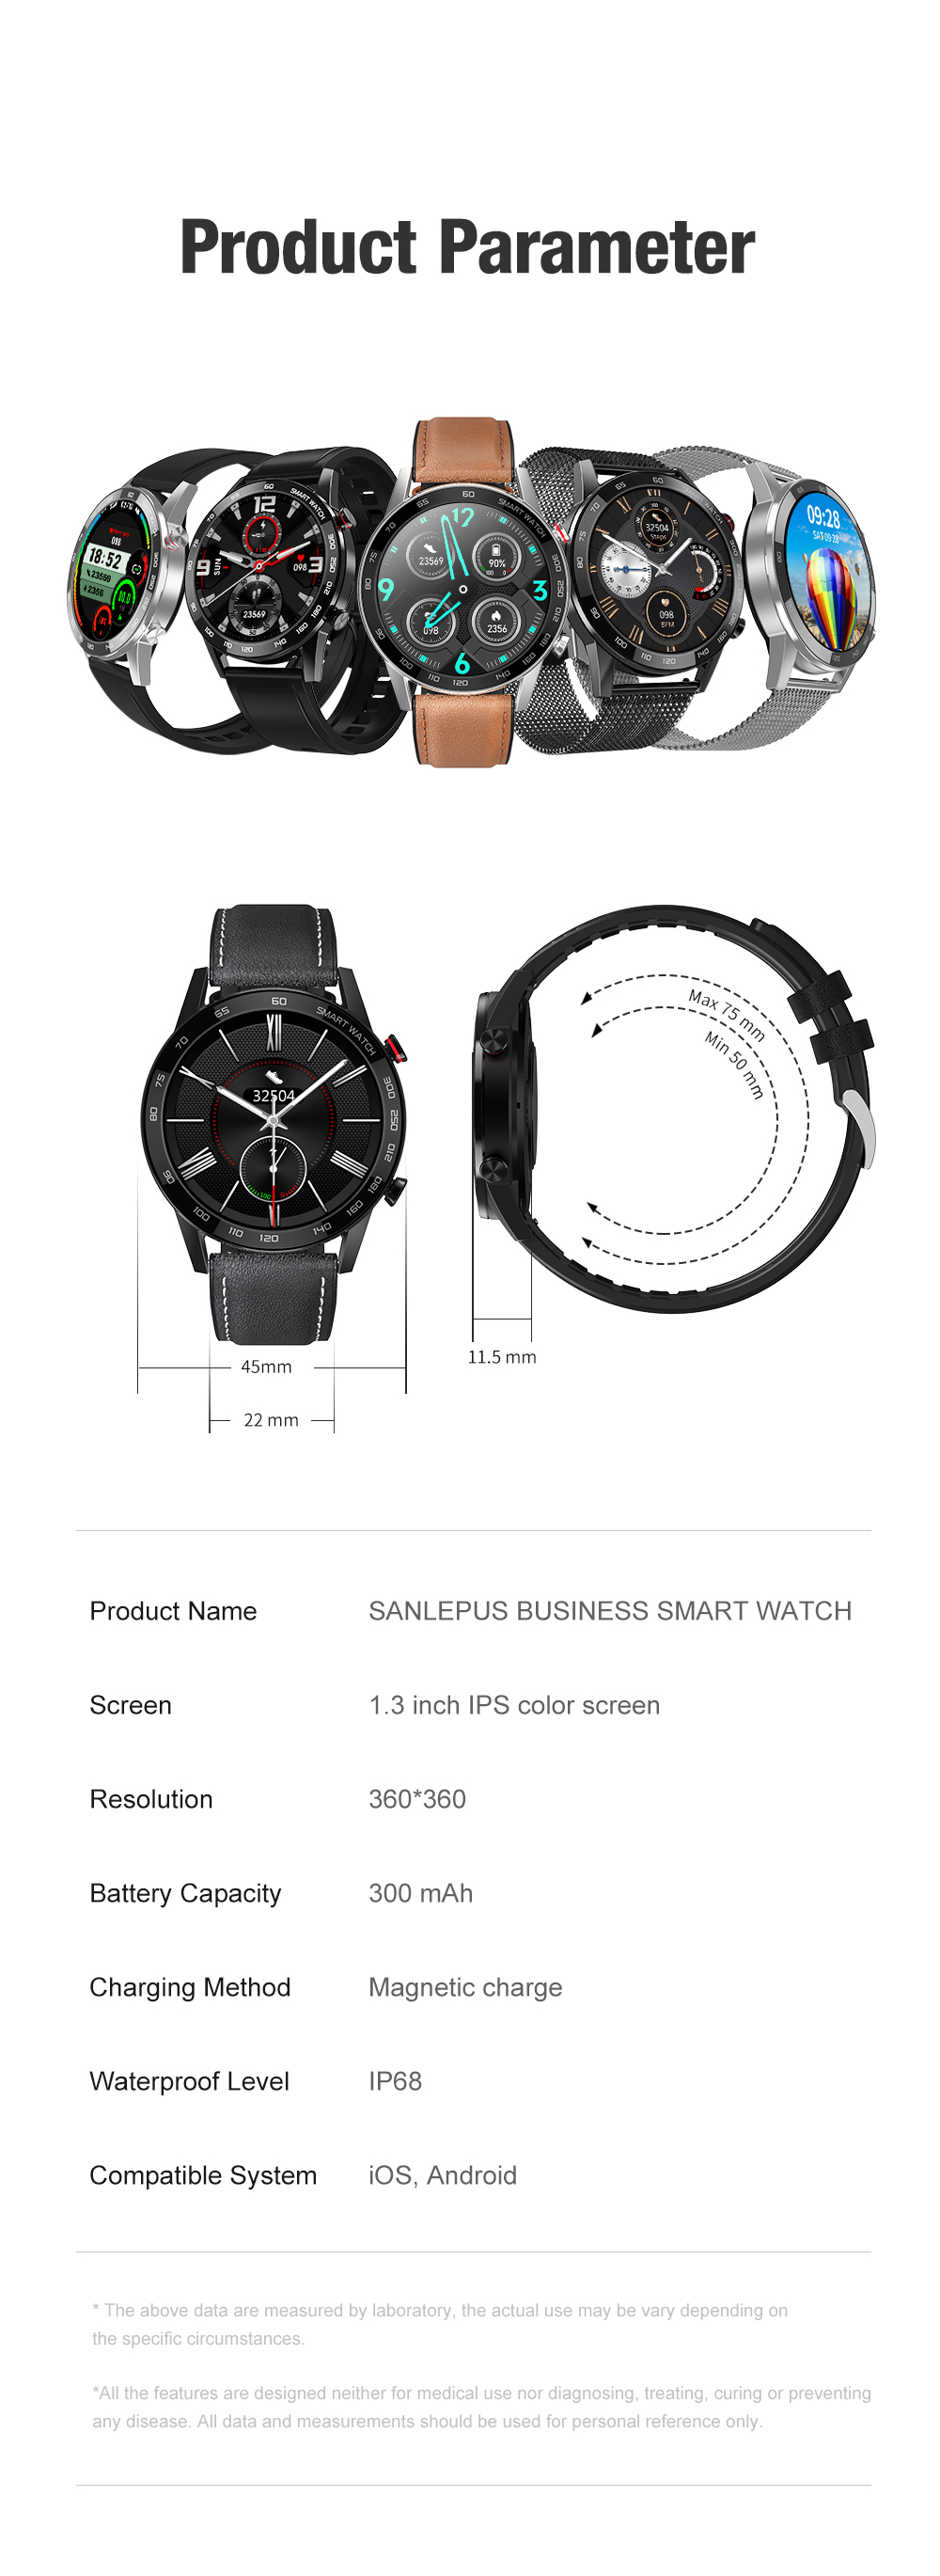 Hcc1e6dcb336f4f228c308e05e2d2270bt 2021 SANLEPUS ECG Smart Watch Dial Call Smartwatch Men Sport Fitness Bracelet Clock Watches For Android Apple Xiaomi